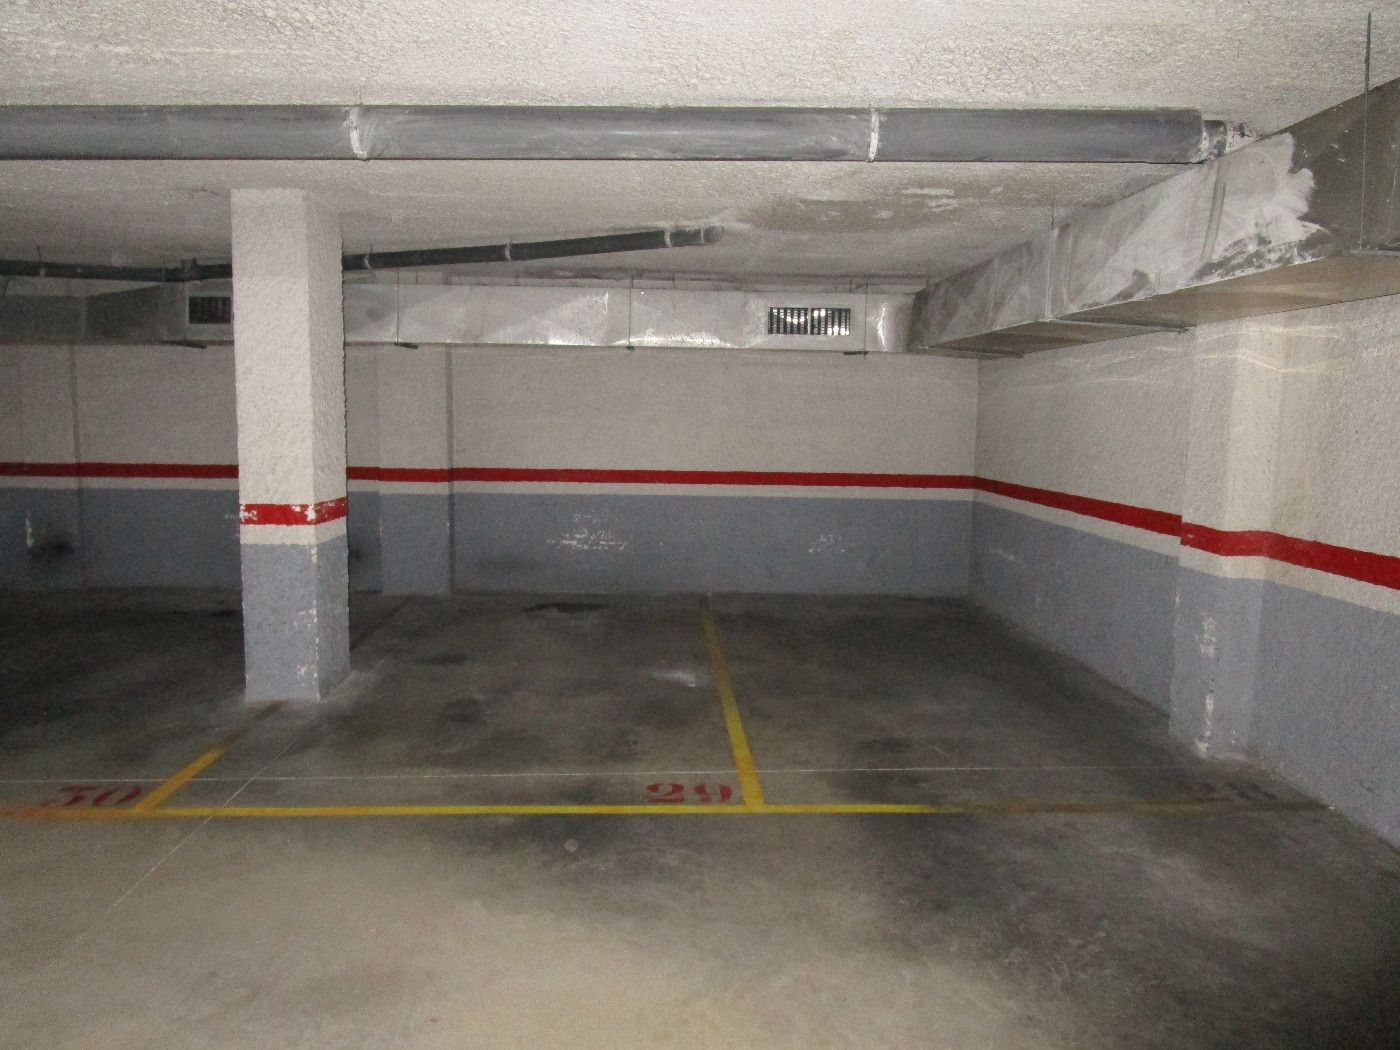 Location Parking voiture  Carrer bosch i cardellach. Zona rambla